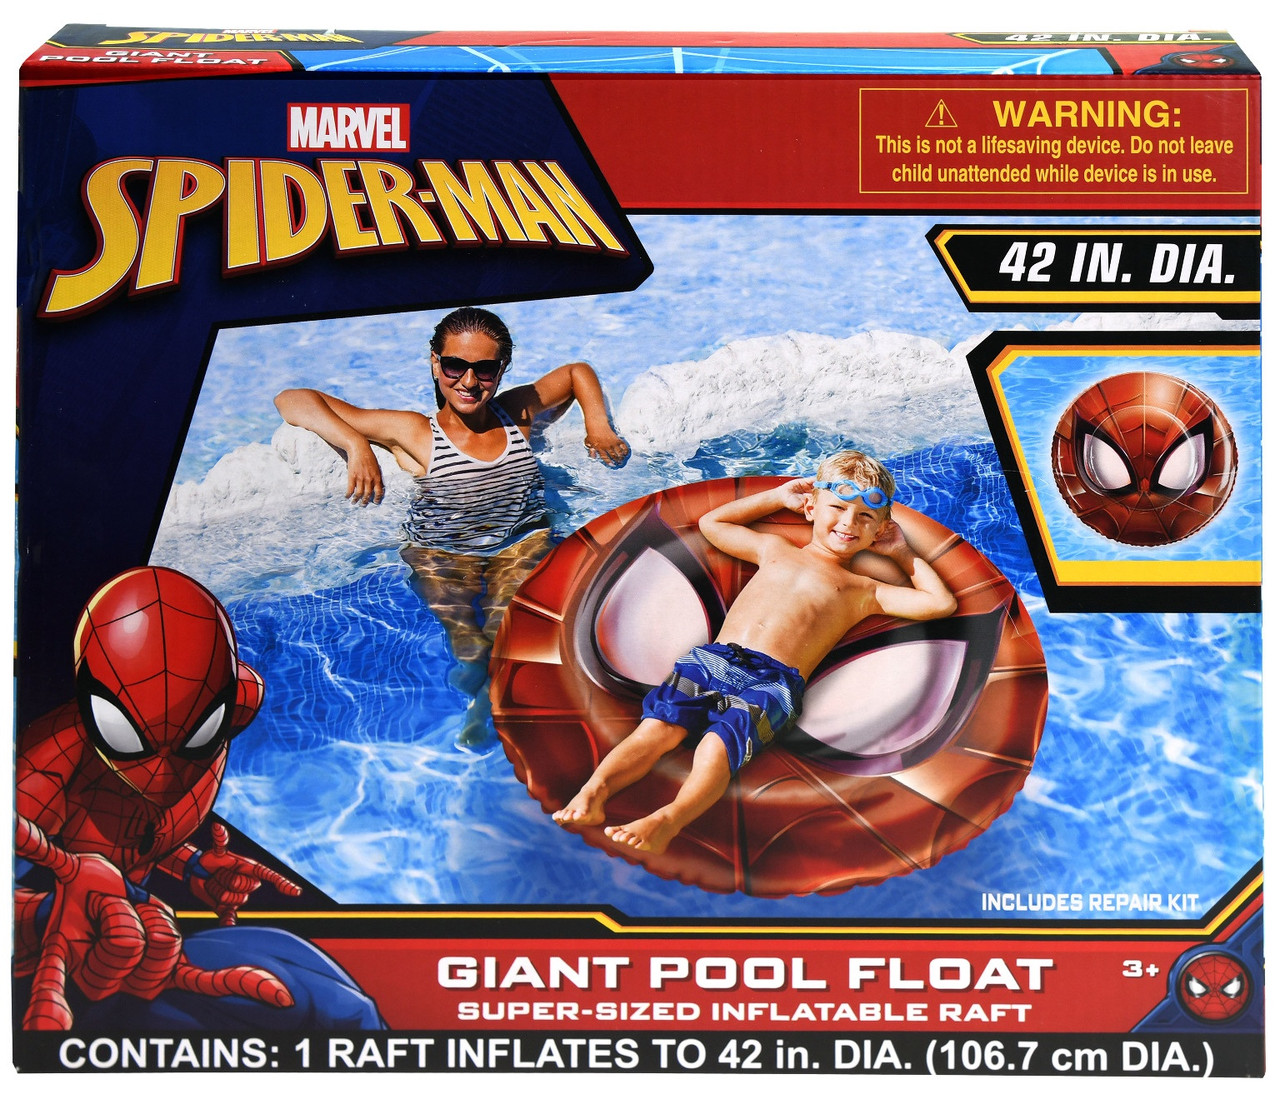 SPIDER MAN INFLATABLE GAINT ROUND FLOAT